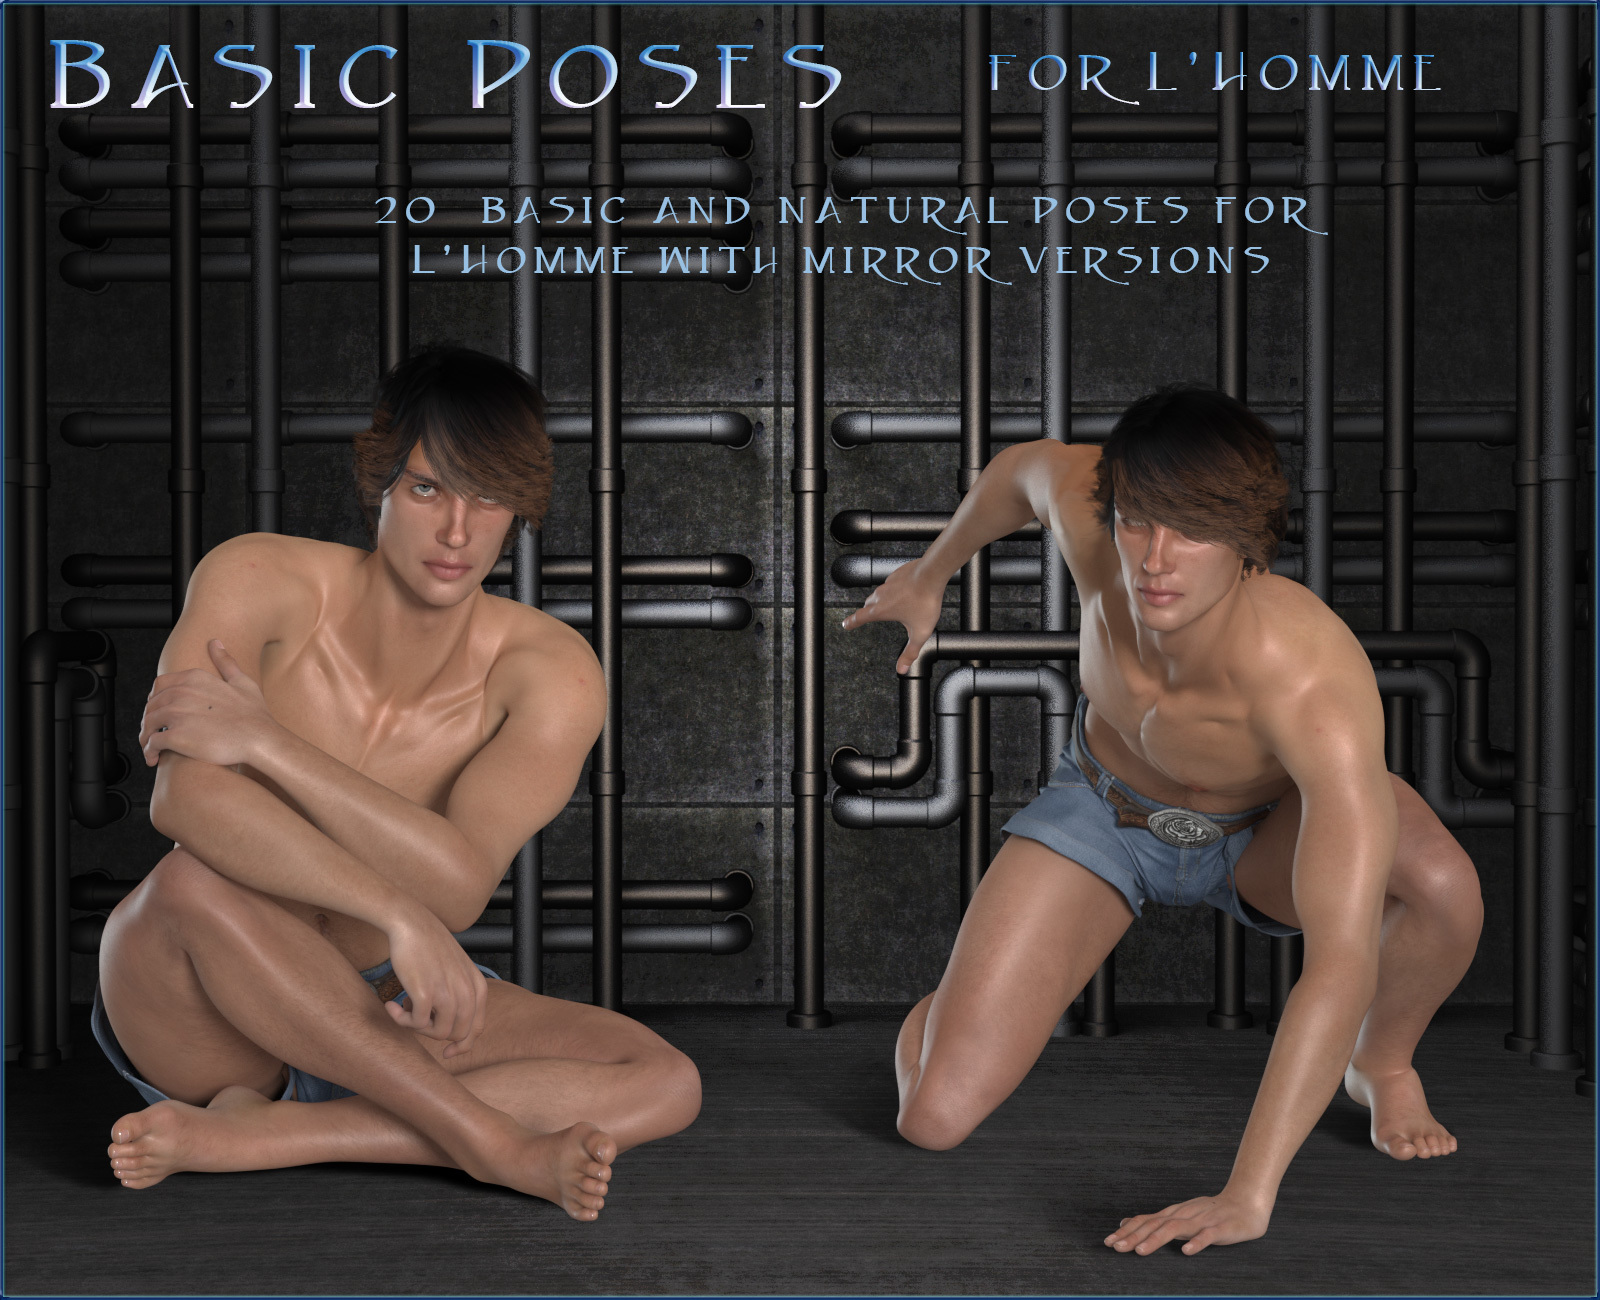 Basic Poses for L'Homme by RPublishing